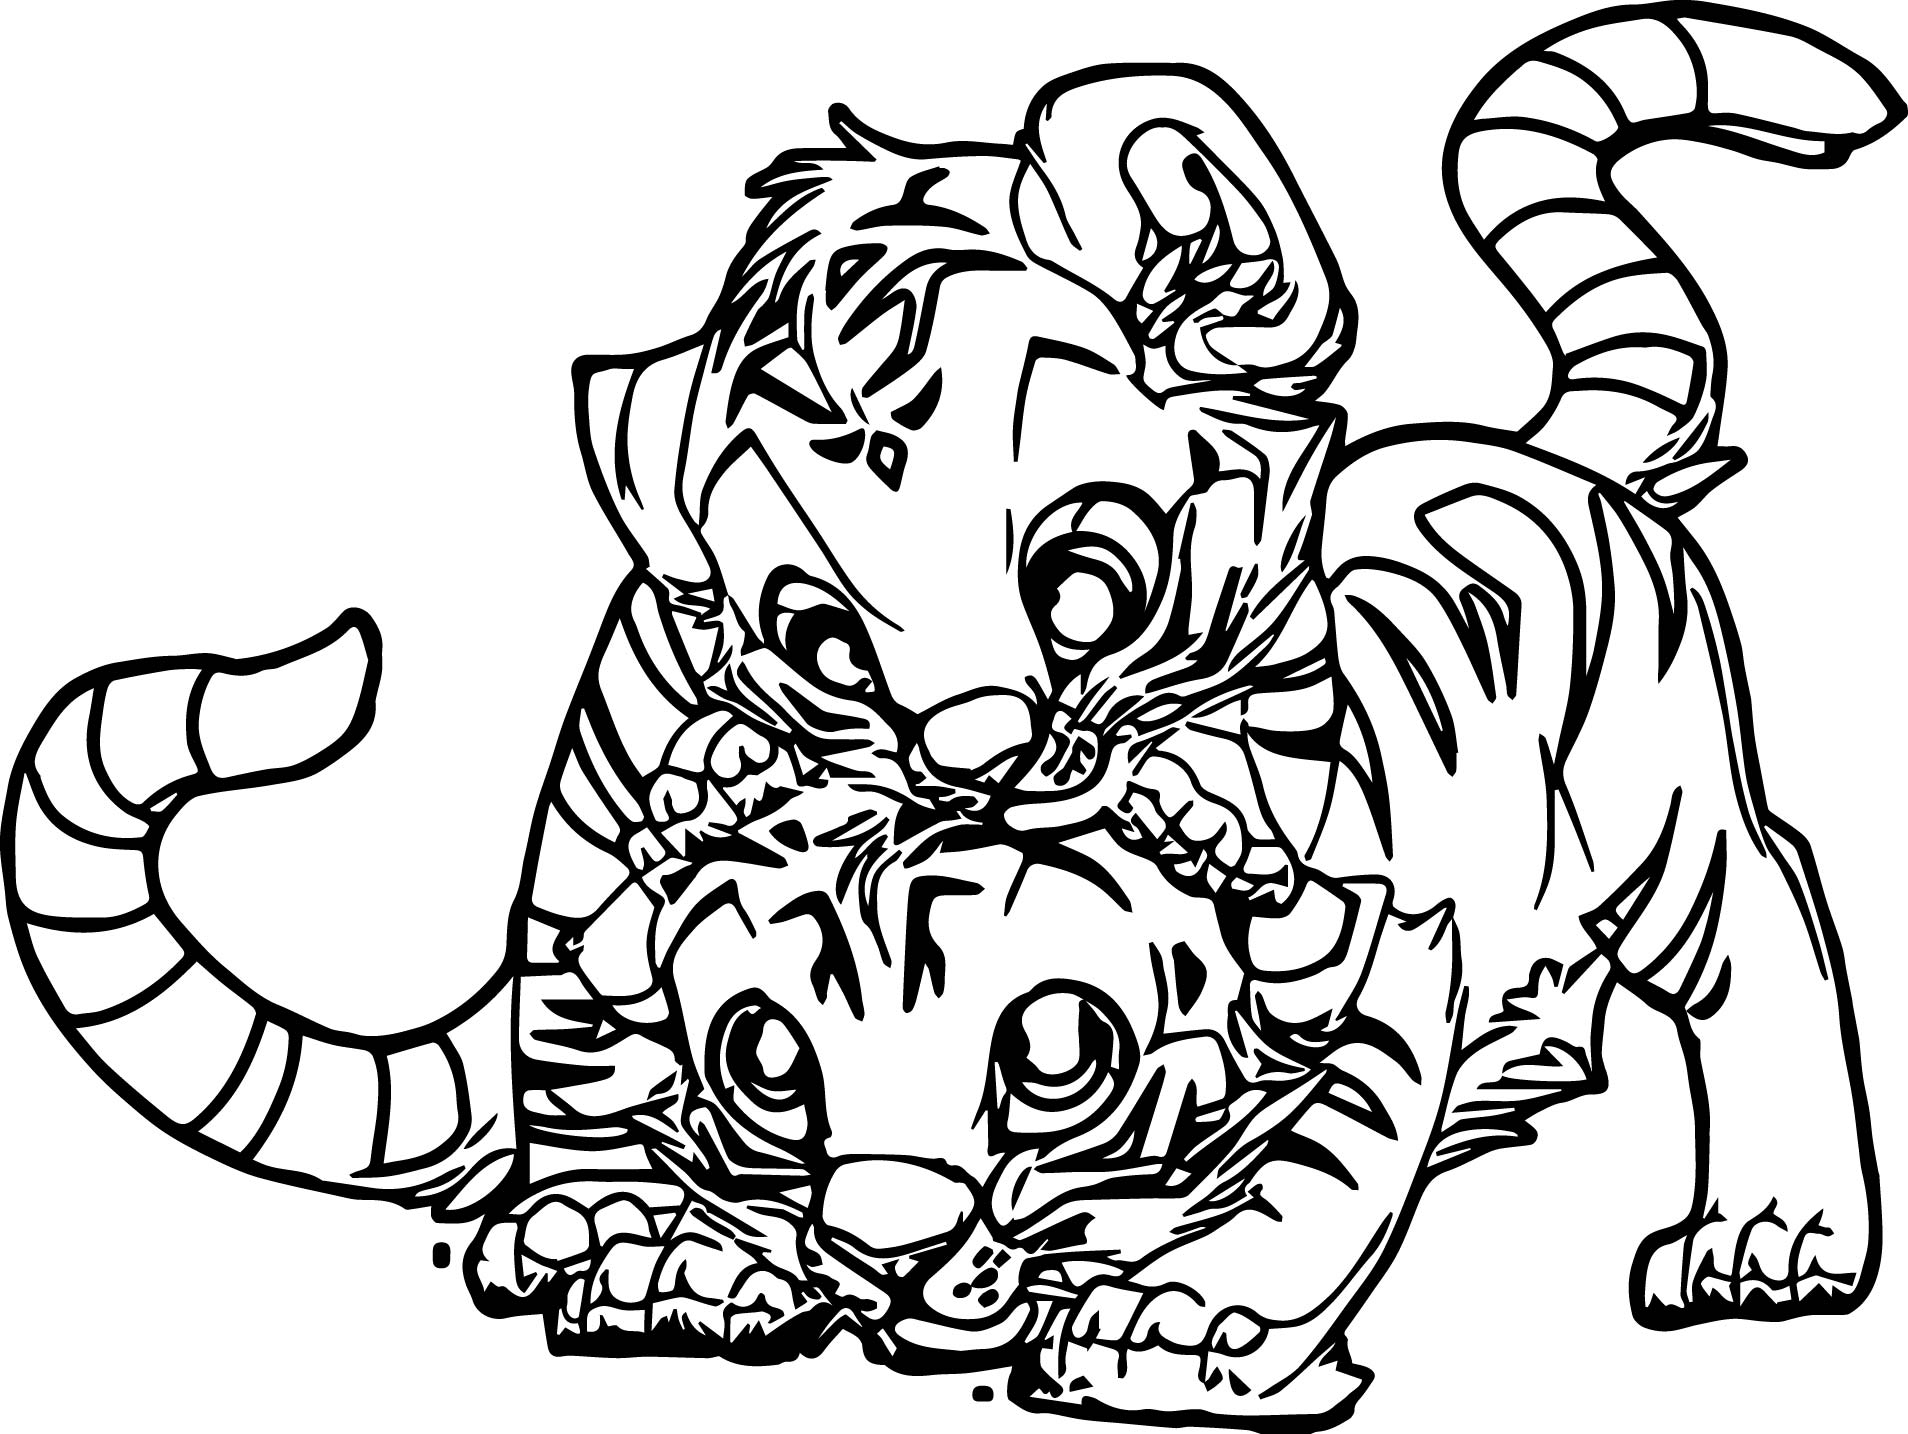 coloring page tiger tiger coloring pages the sun flower pages tiger coloring page